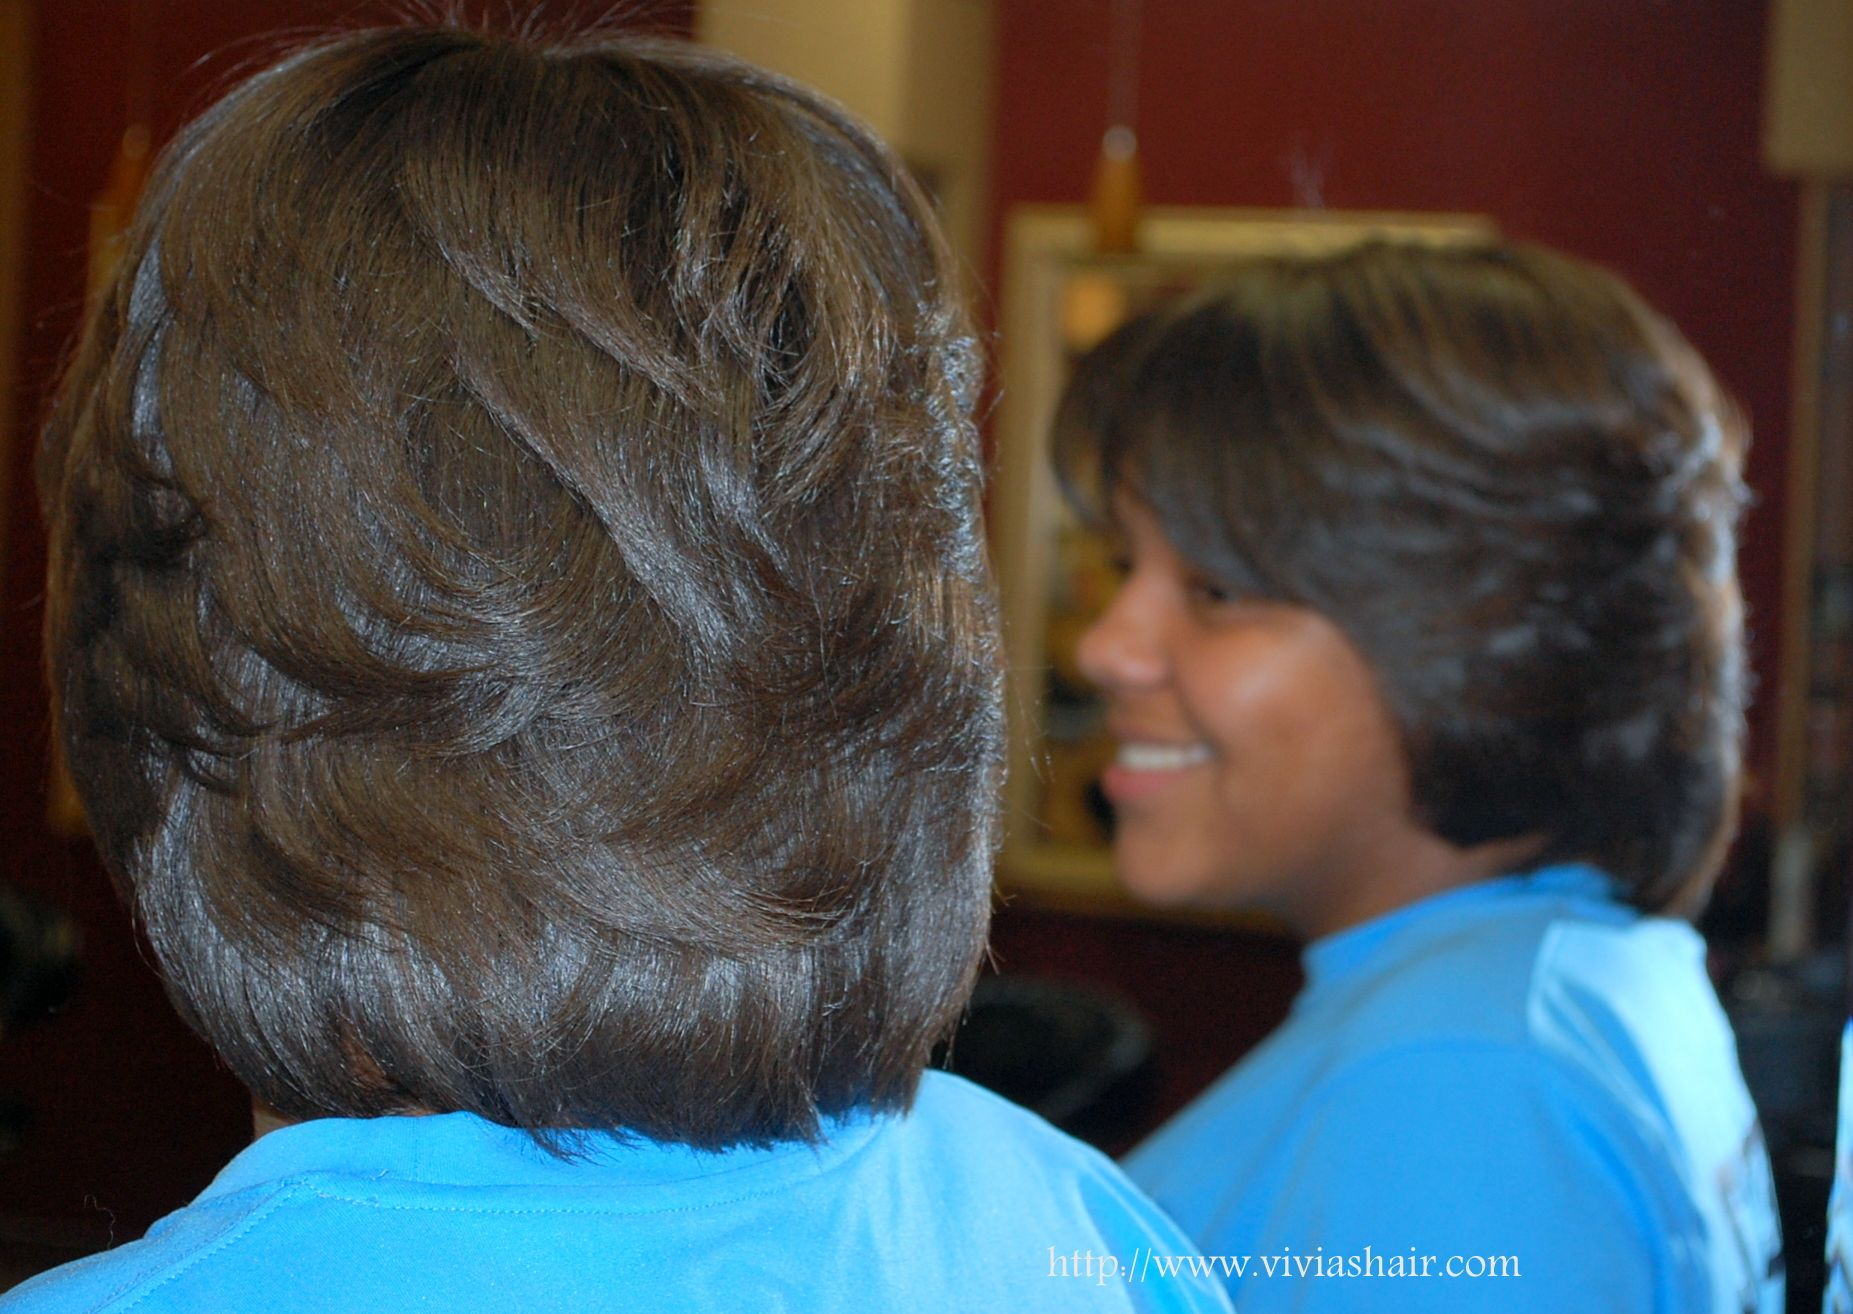 Hair Salon Woodbridge Va Mobile Hair Salon Va Natural Hair Salon Va Hair Extensions Salon Va Mobile Hair Sal Black Hair Salons Mobile Hair Salon Hair Salon